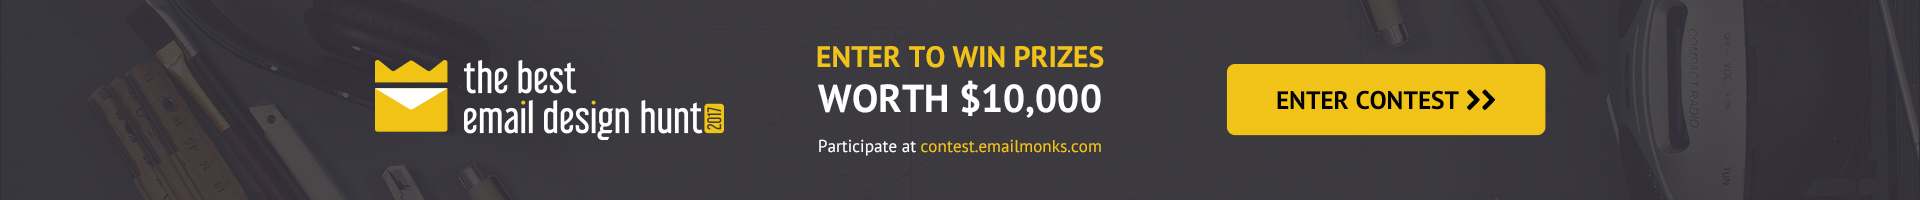 Emailmonks Contest